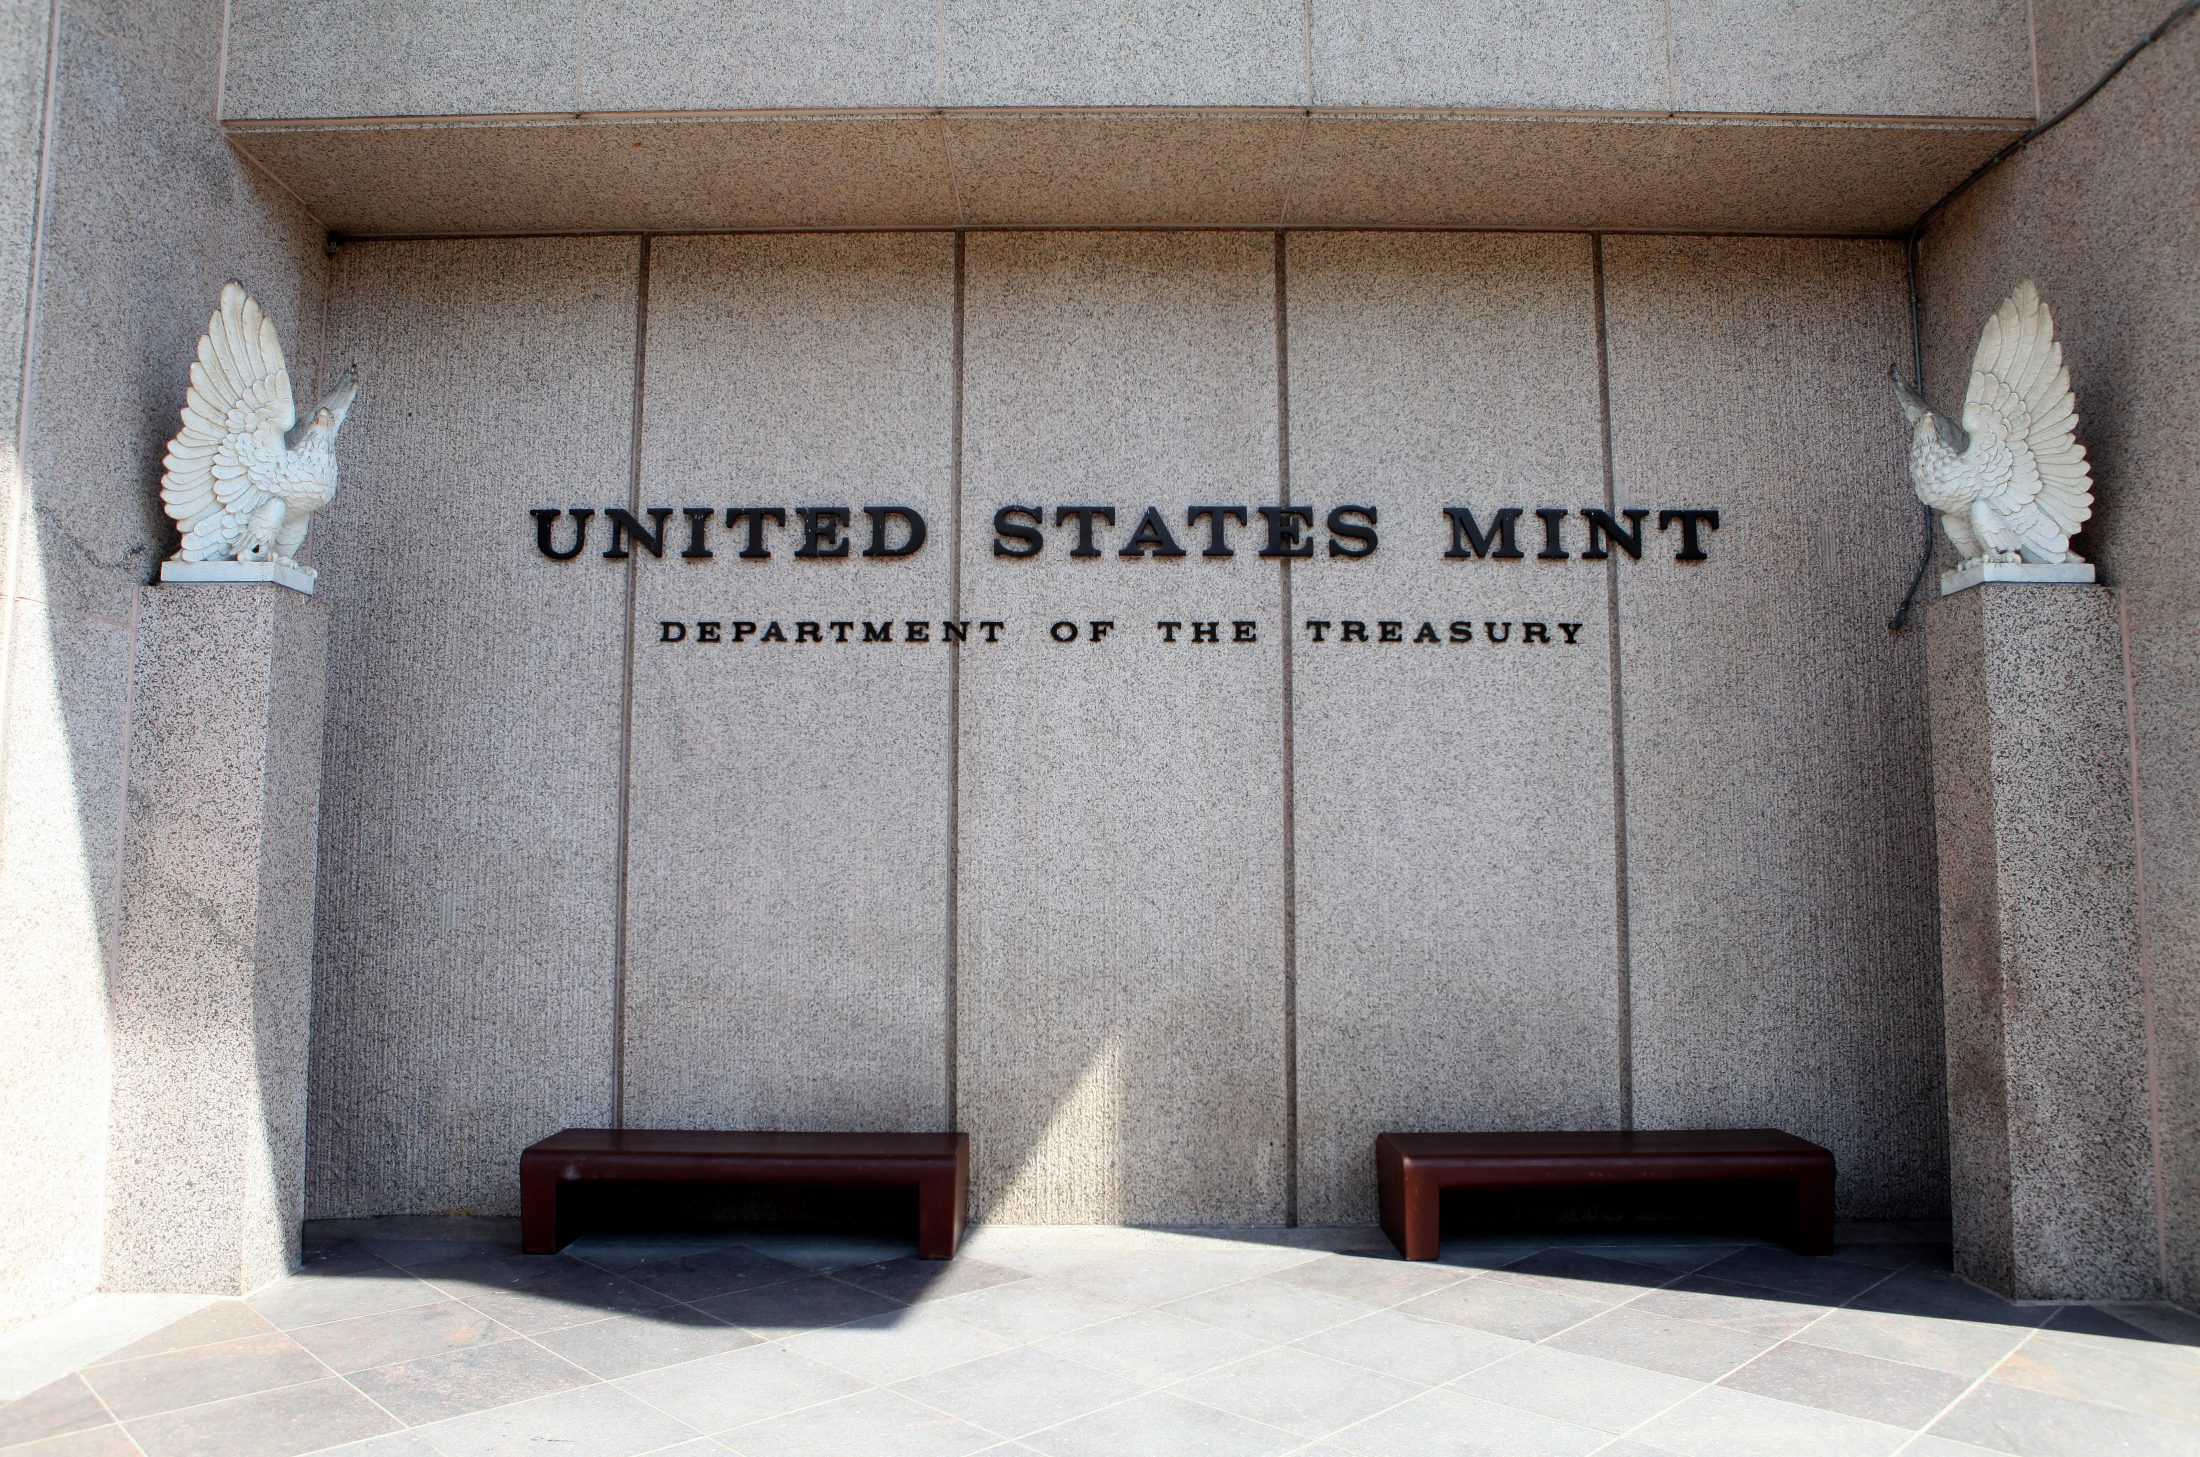 A 2016 photo of the U.S. Mint building in Philadelphia, Pennsylvania. Photo By Raymond Boyd/Getty Images